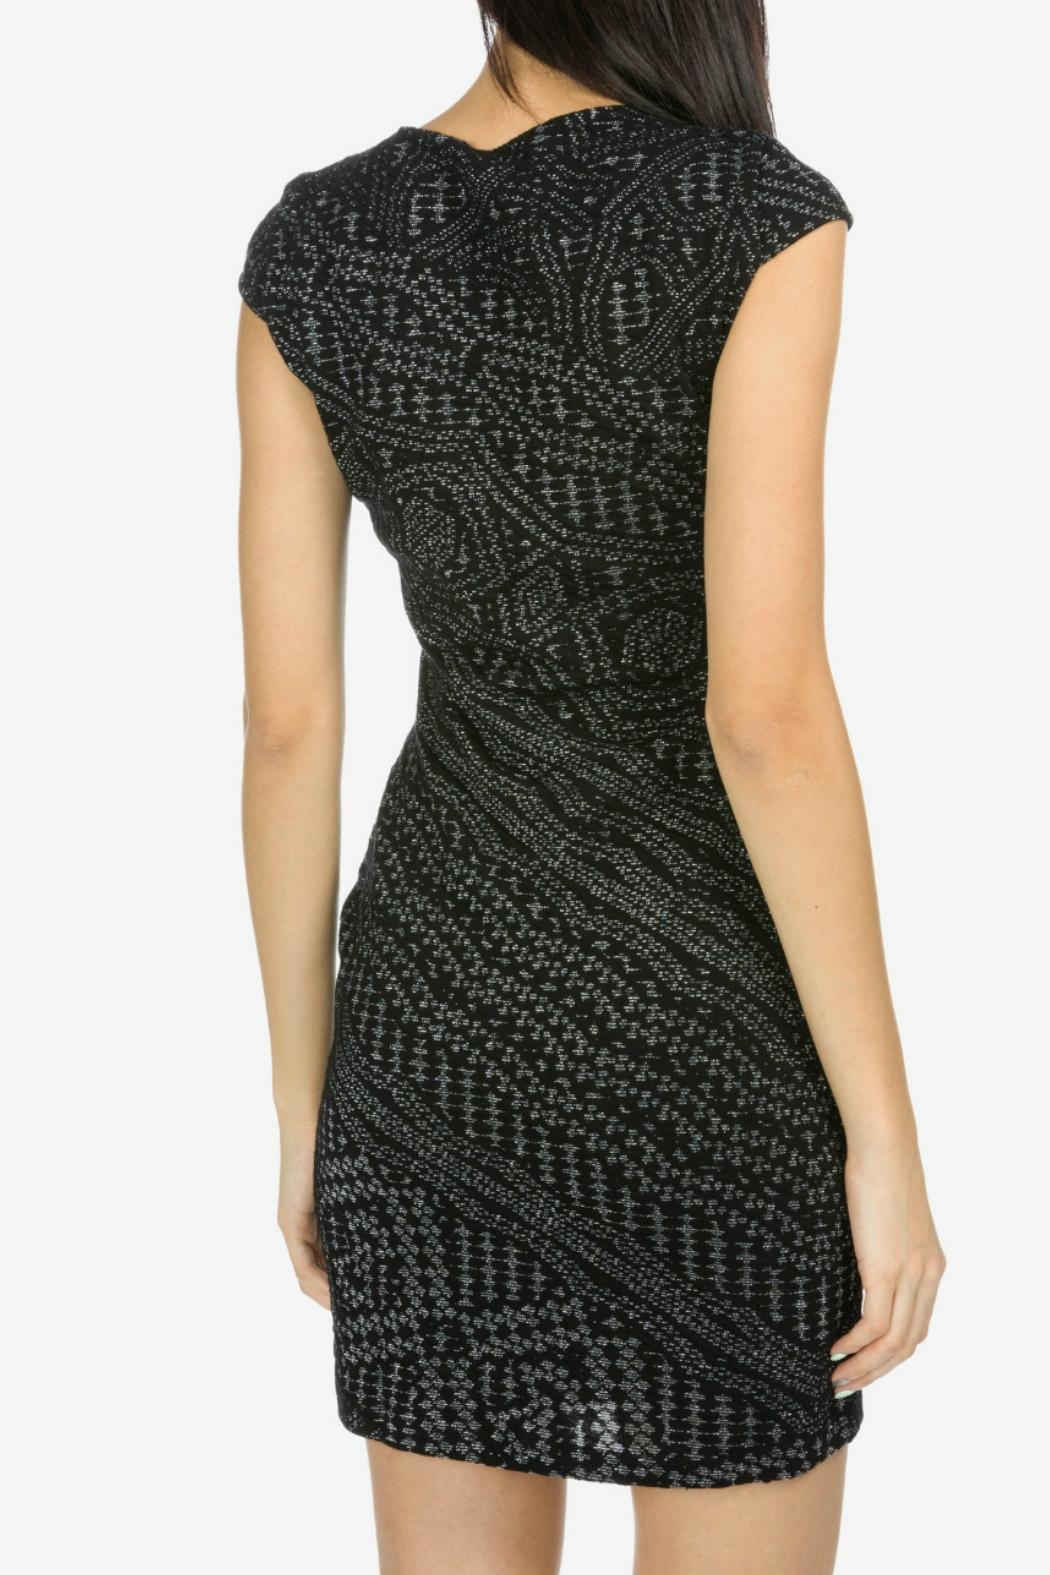 Desigual - Spain Black Knitted Dress - Side Cropped Image